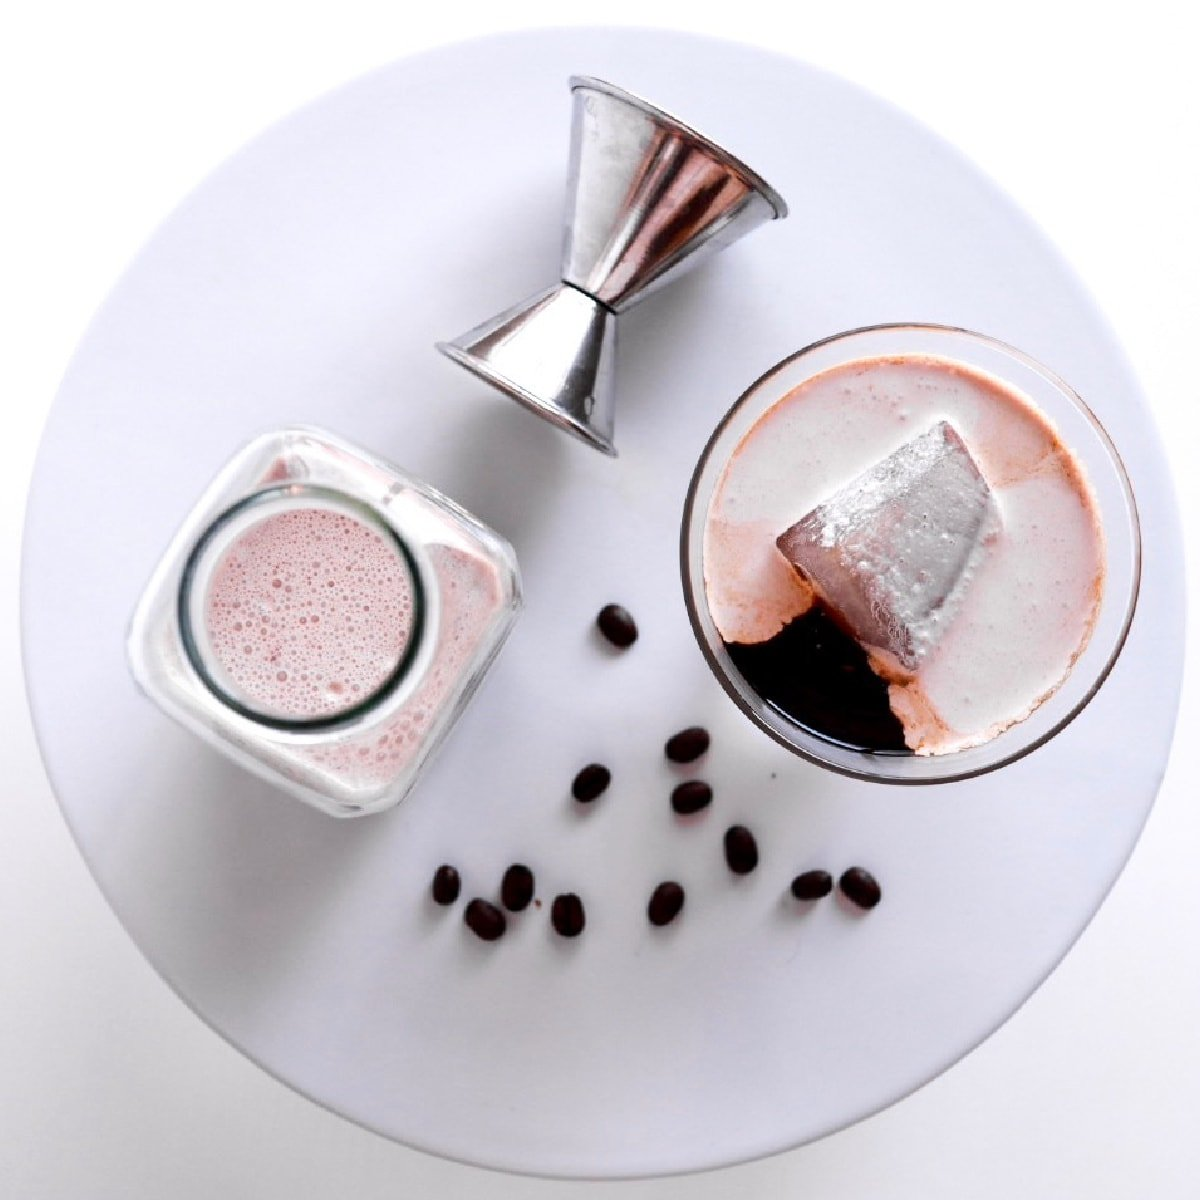 overhead shot of a glass of Keto Irish Cream on the rocks, a bottle of Irish cream, coffee beans, and a cocktail jigger